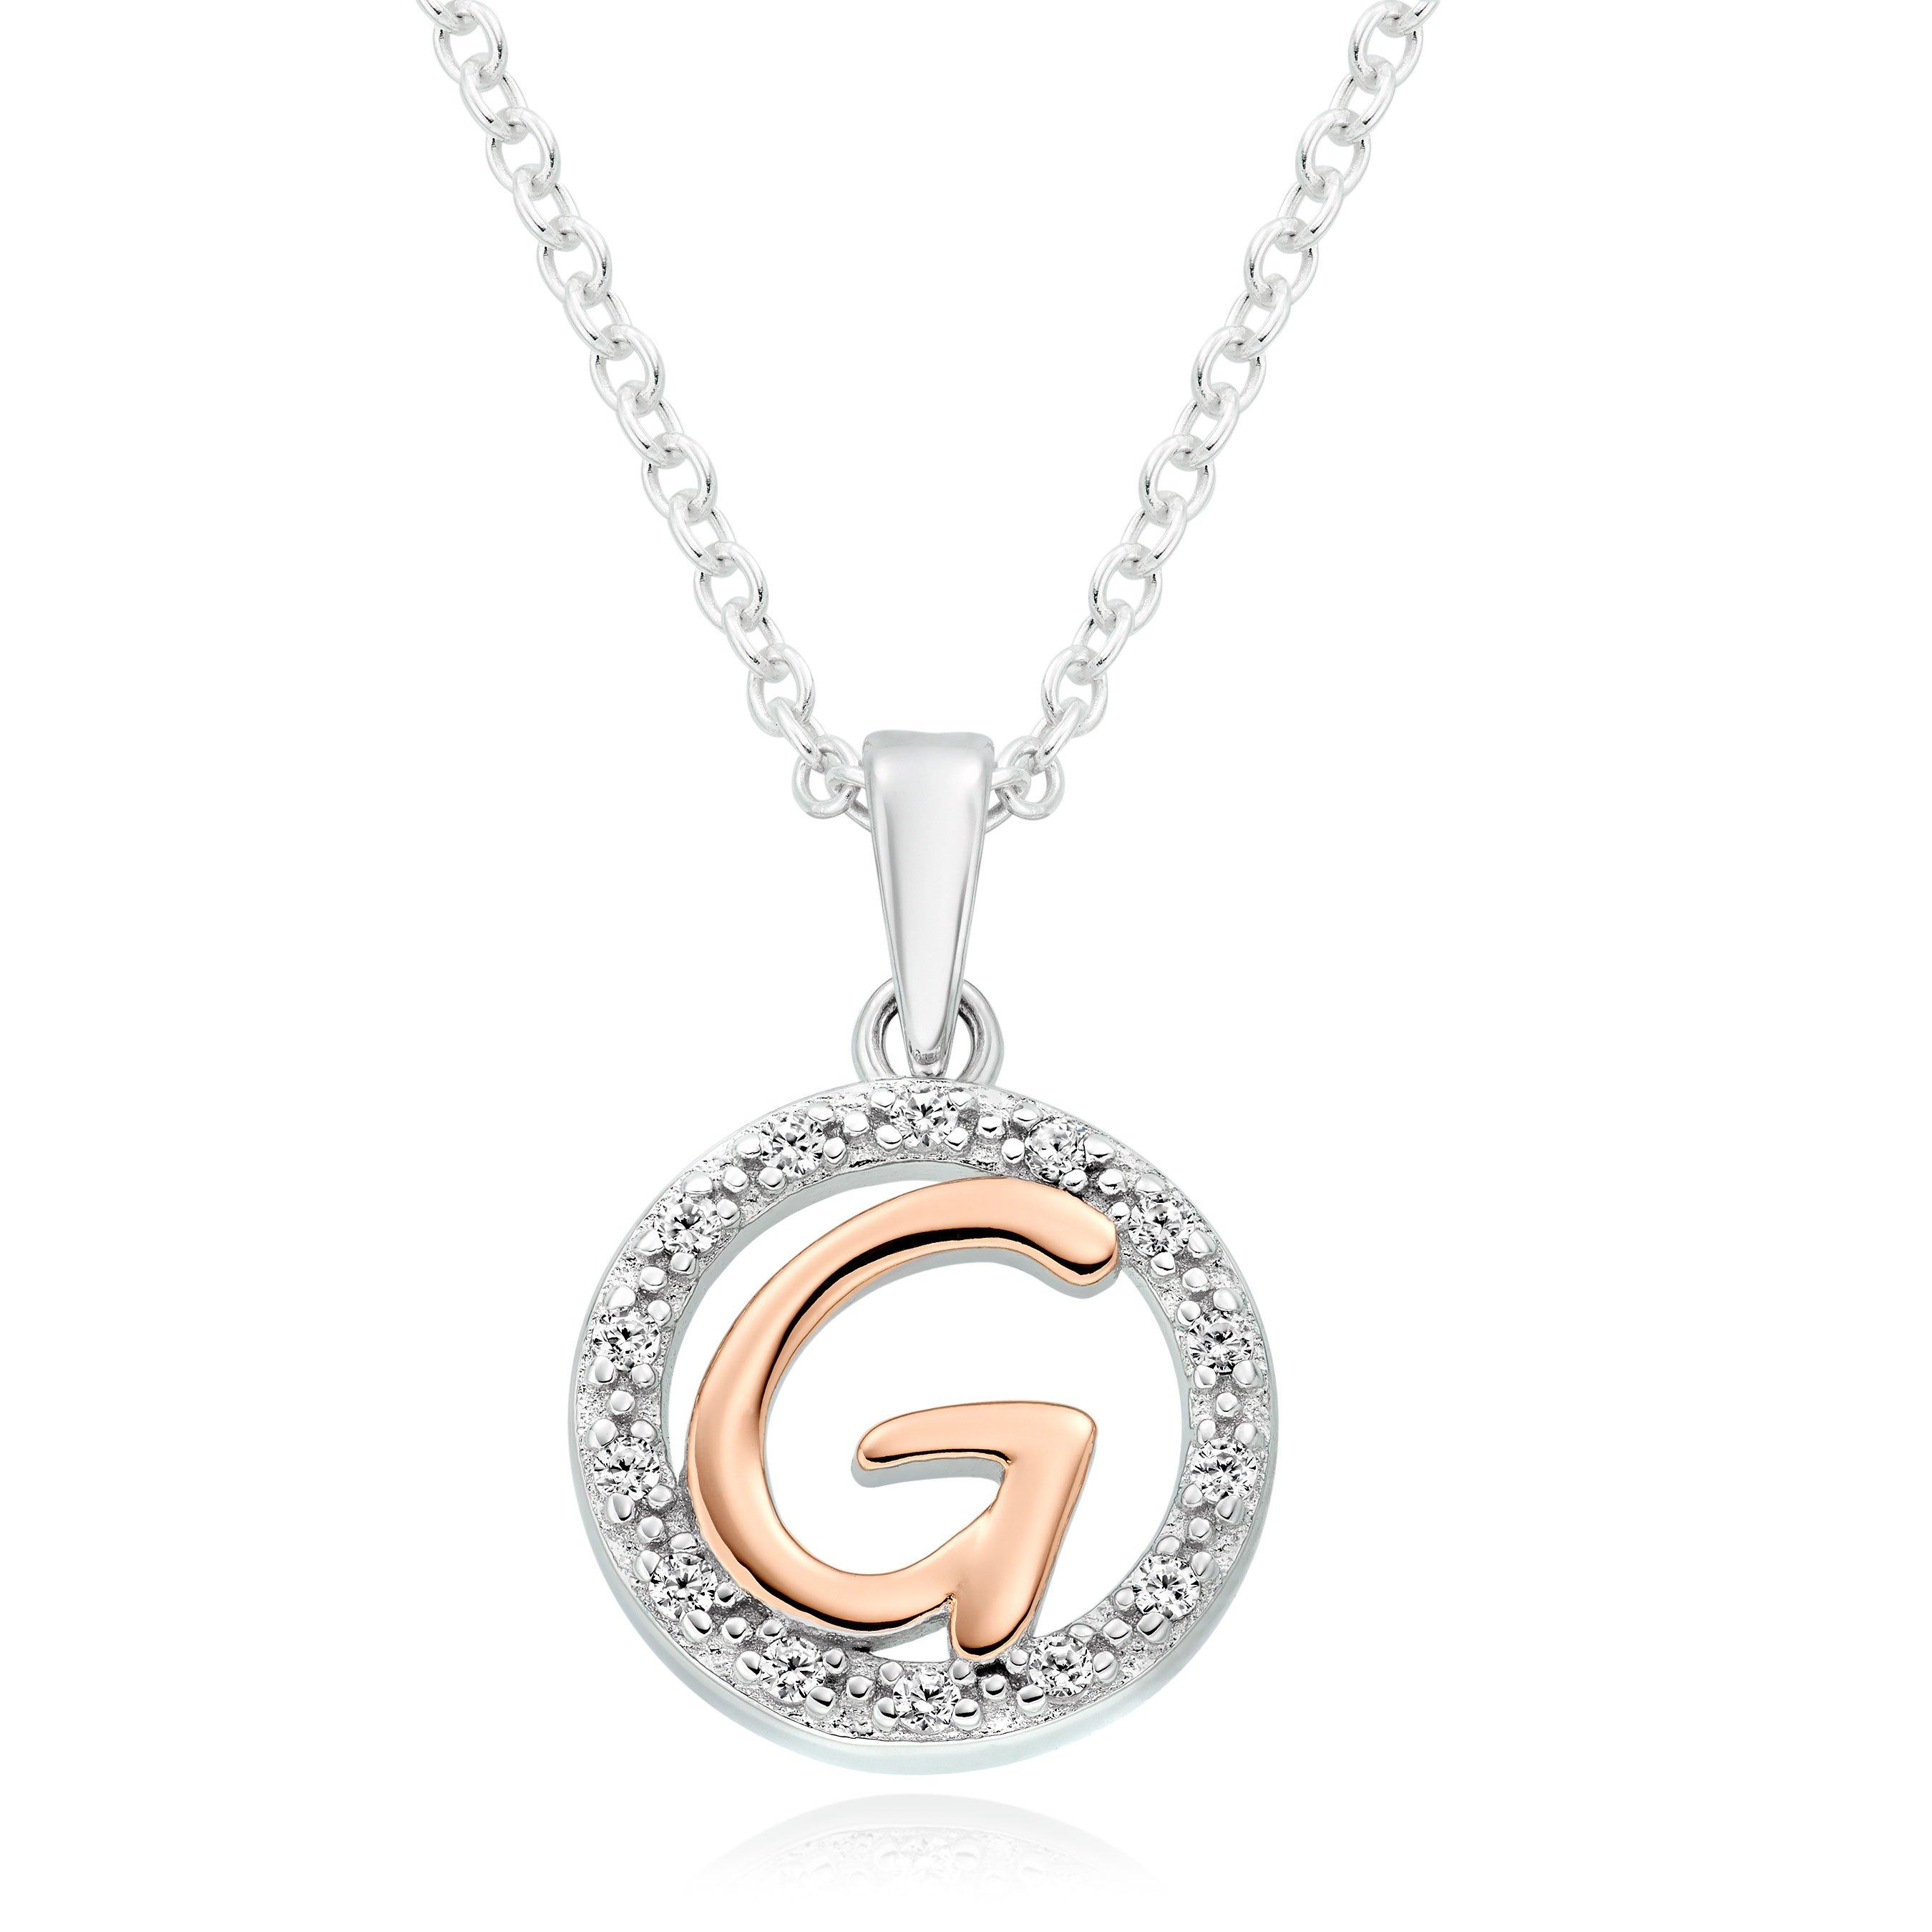 Silver Rose Gold Plated Cubic Zirconia Letter G Pendant